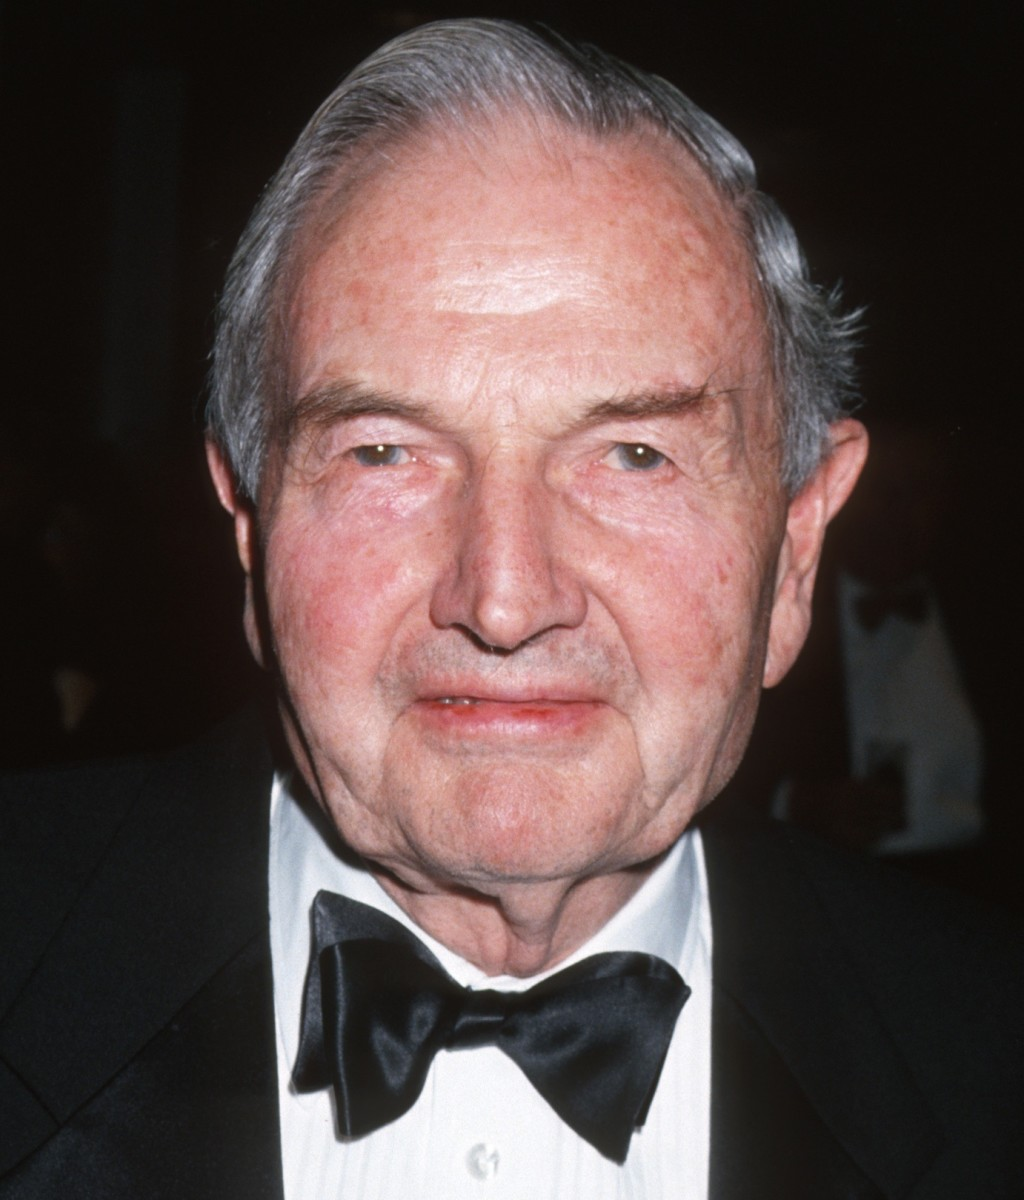 david_rockefeller_photo_jim_smeal_wireimage_getty_images_115356418_profile.jpg